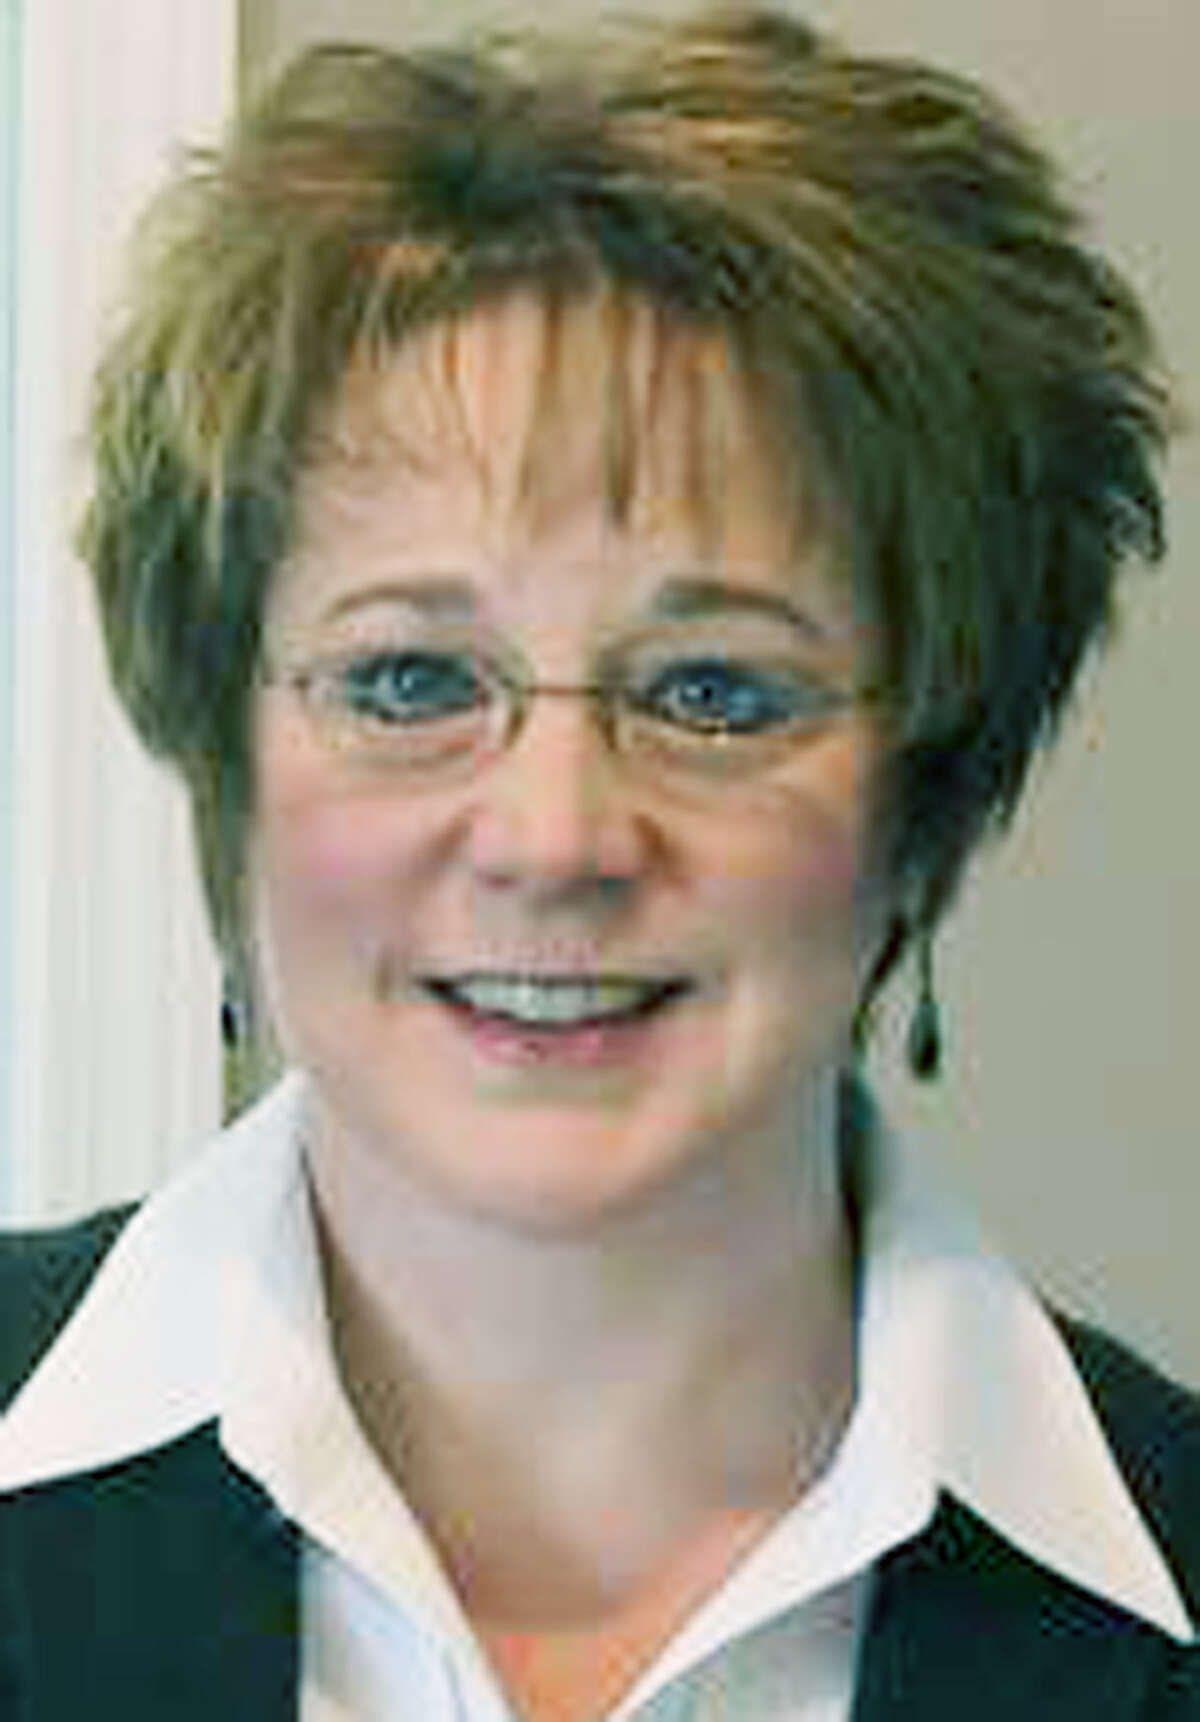 Cheryl A. Bakewell, CPA, a partner in Bakewell Mulhare, LLC in New Milford, is a member of the Board of Directors of the United Way of Western Connecticut, July 2014